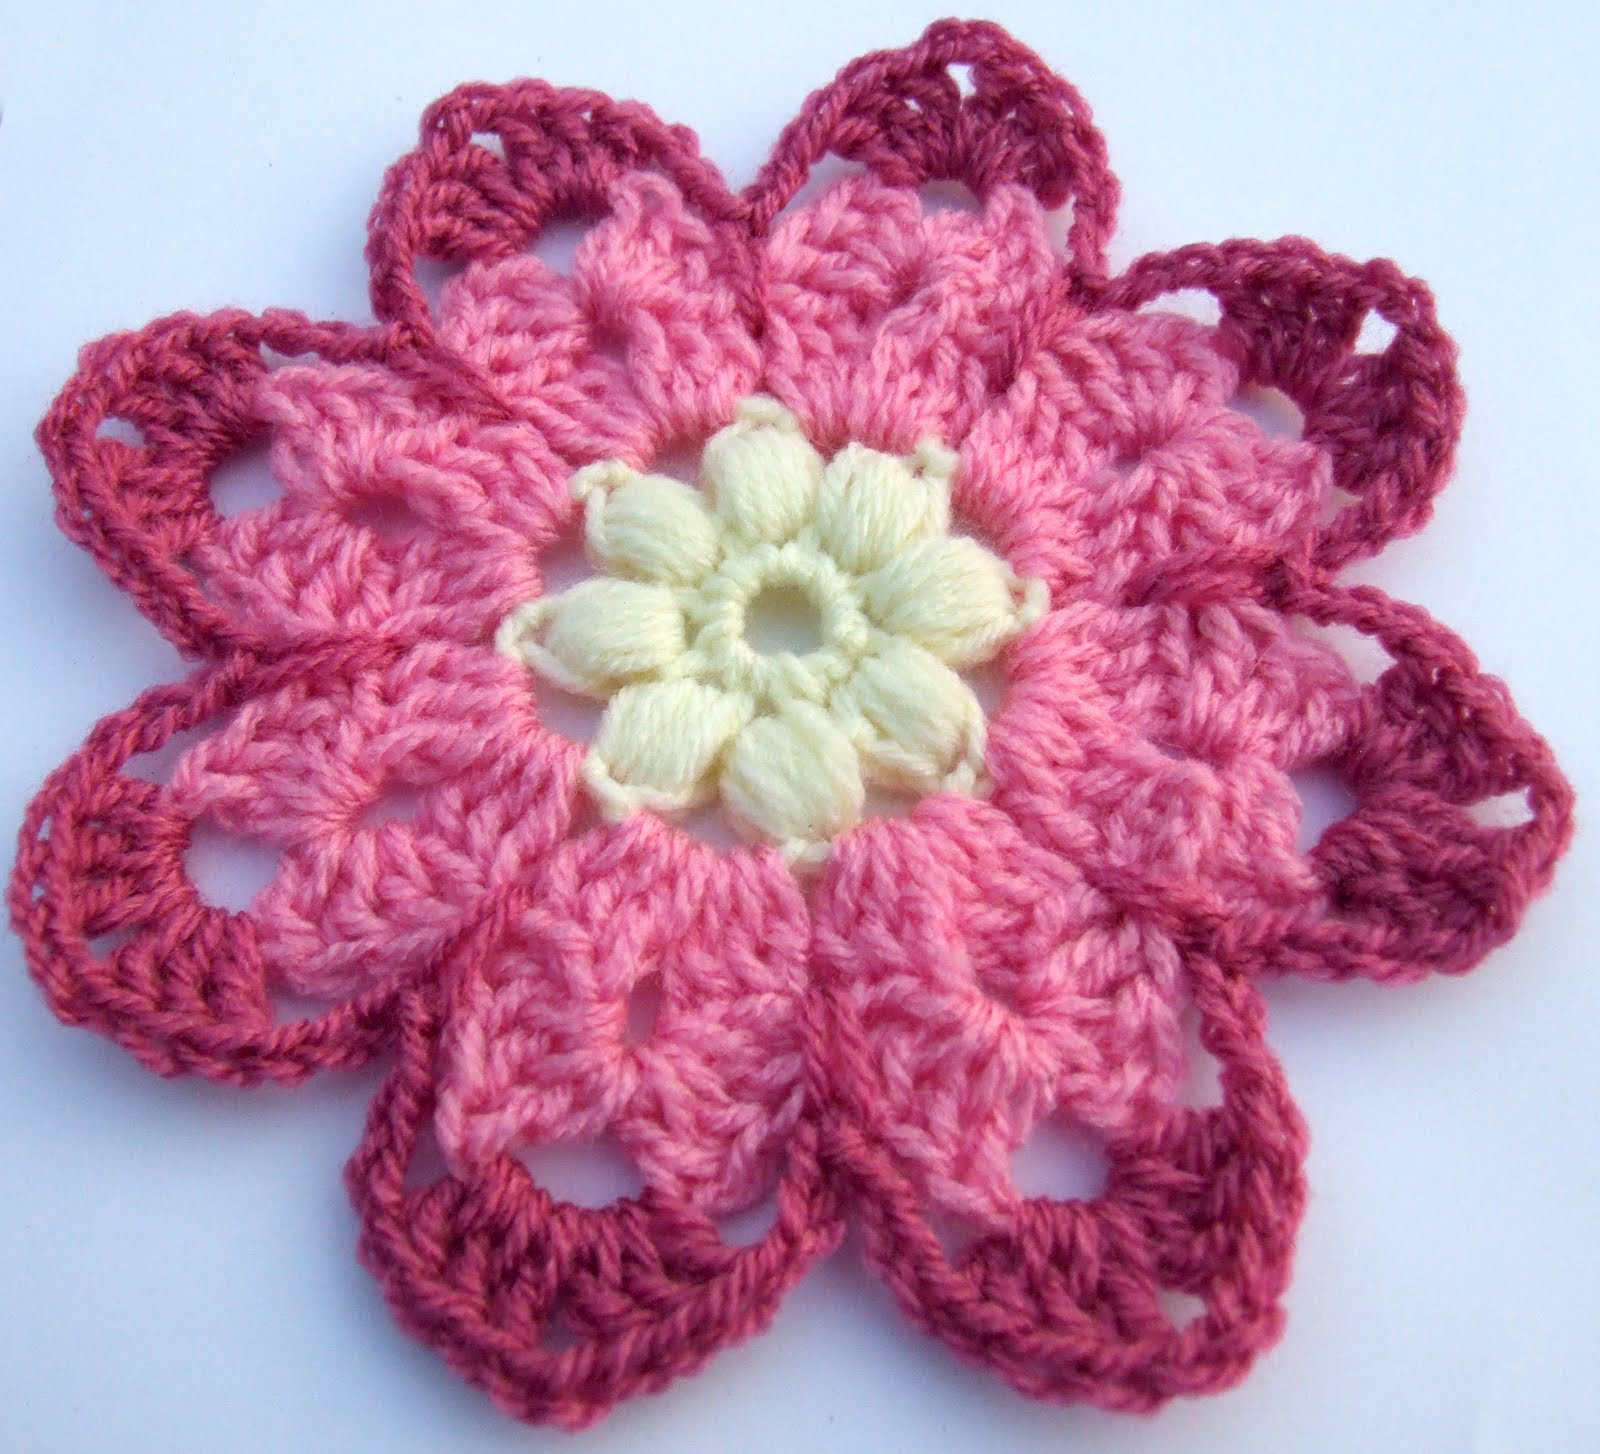 Awesome Free Crochet Granny Square Clothing Pattern Crochet Flower Square Of Brilliant 47 Models Crochet Flower Square